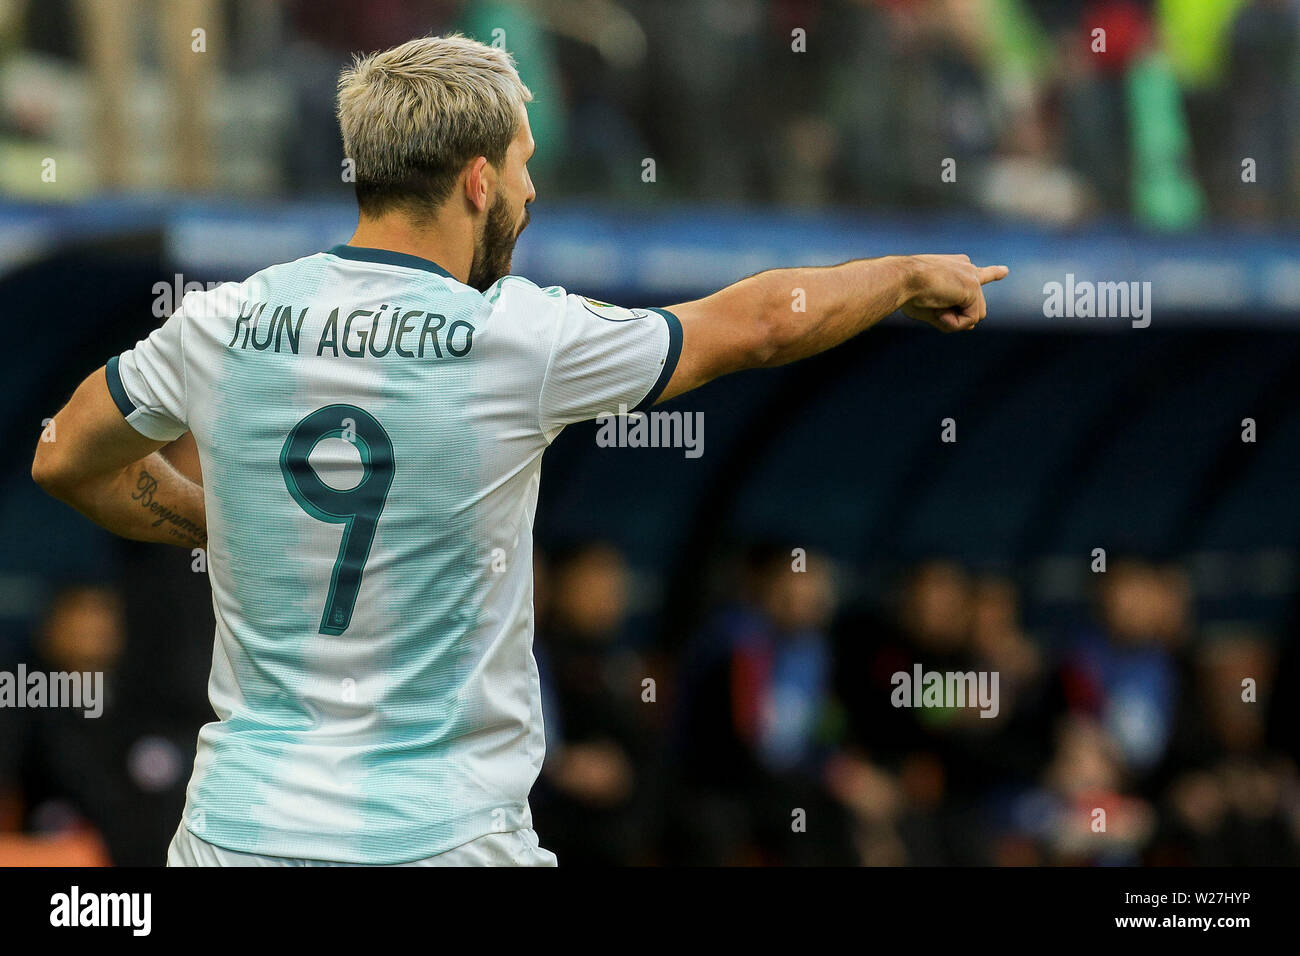 6th July 2019, Arena Corinthians Stadium, Sao Paulo, Brazil; Copa America international football, 3rd-4th playoff final, Argentina versus Chile; Sergio Agüero of Argentina celebrates his goal for 1-0 in the 12th minute - Stock Image